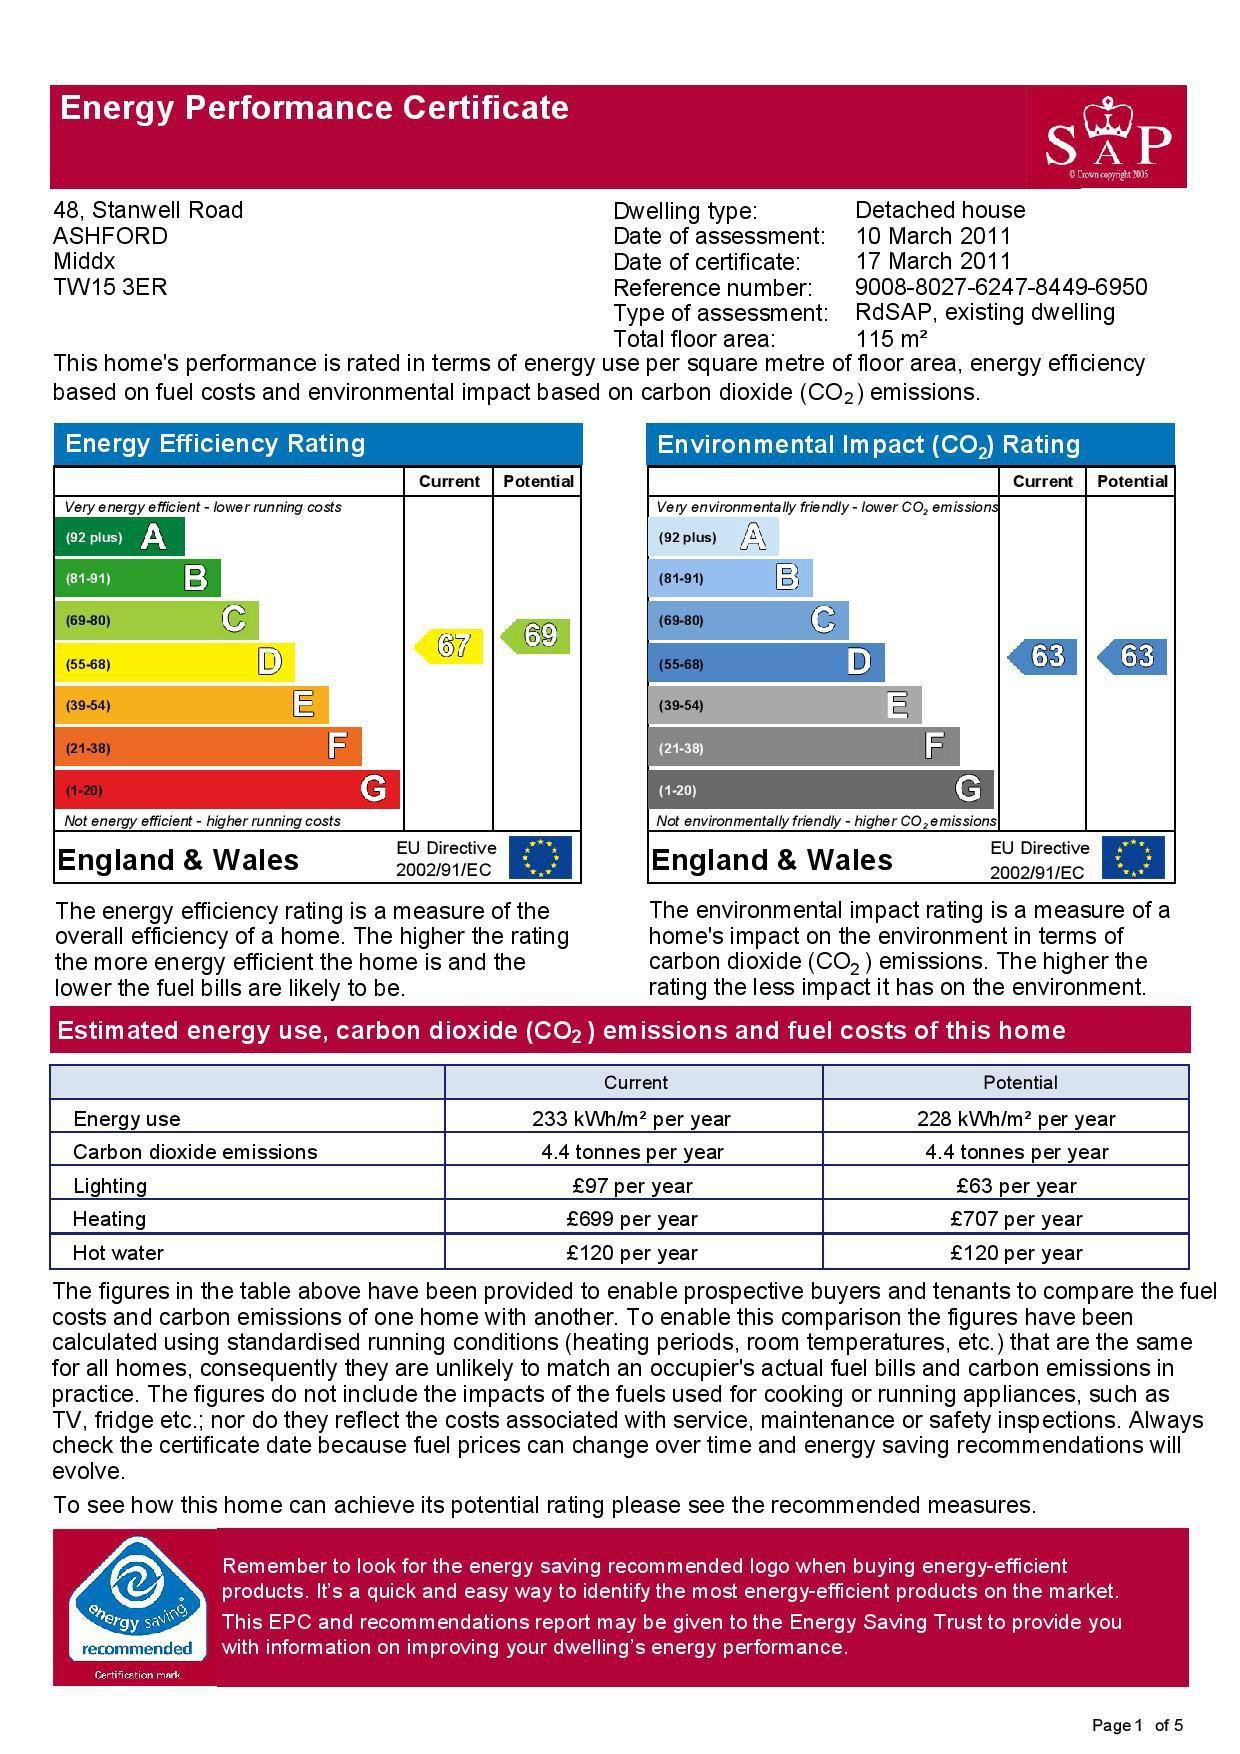 EPC Graph for 48 Stanwell Road, Ashford, Middlesex TW15 3ER